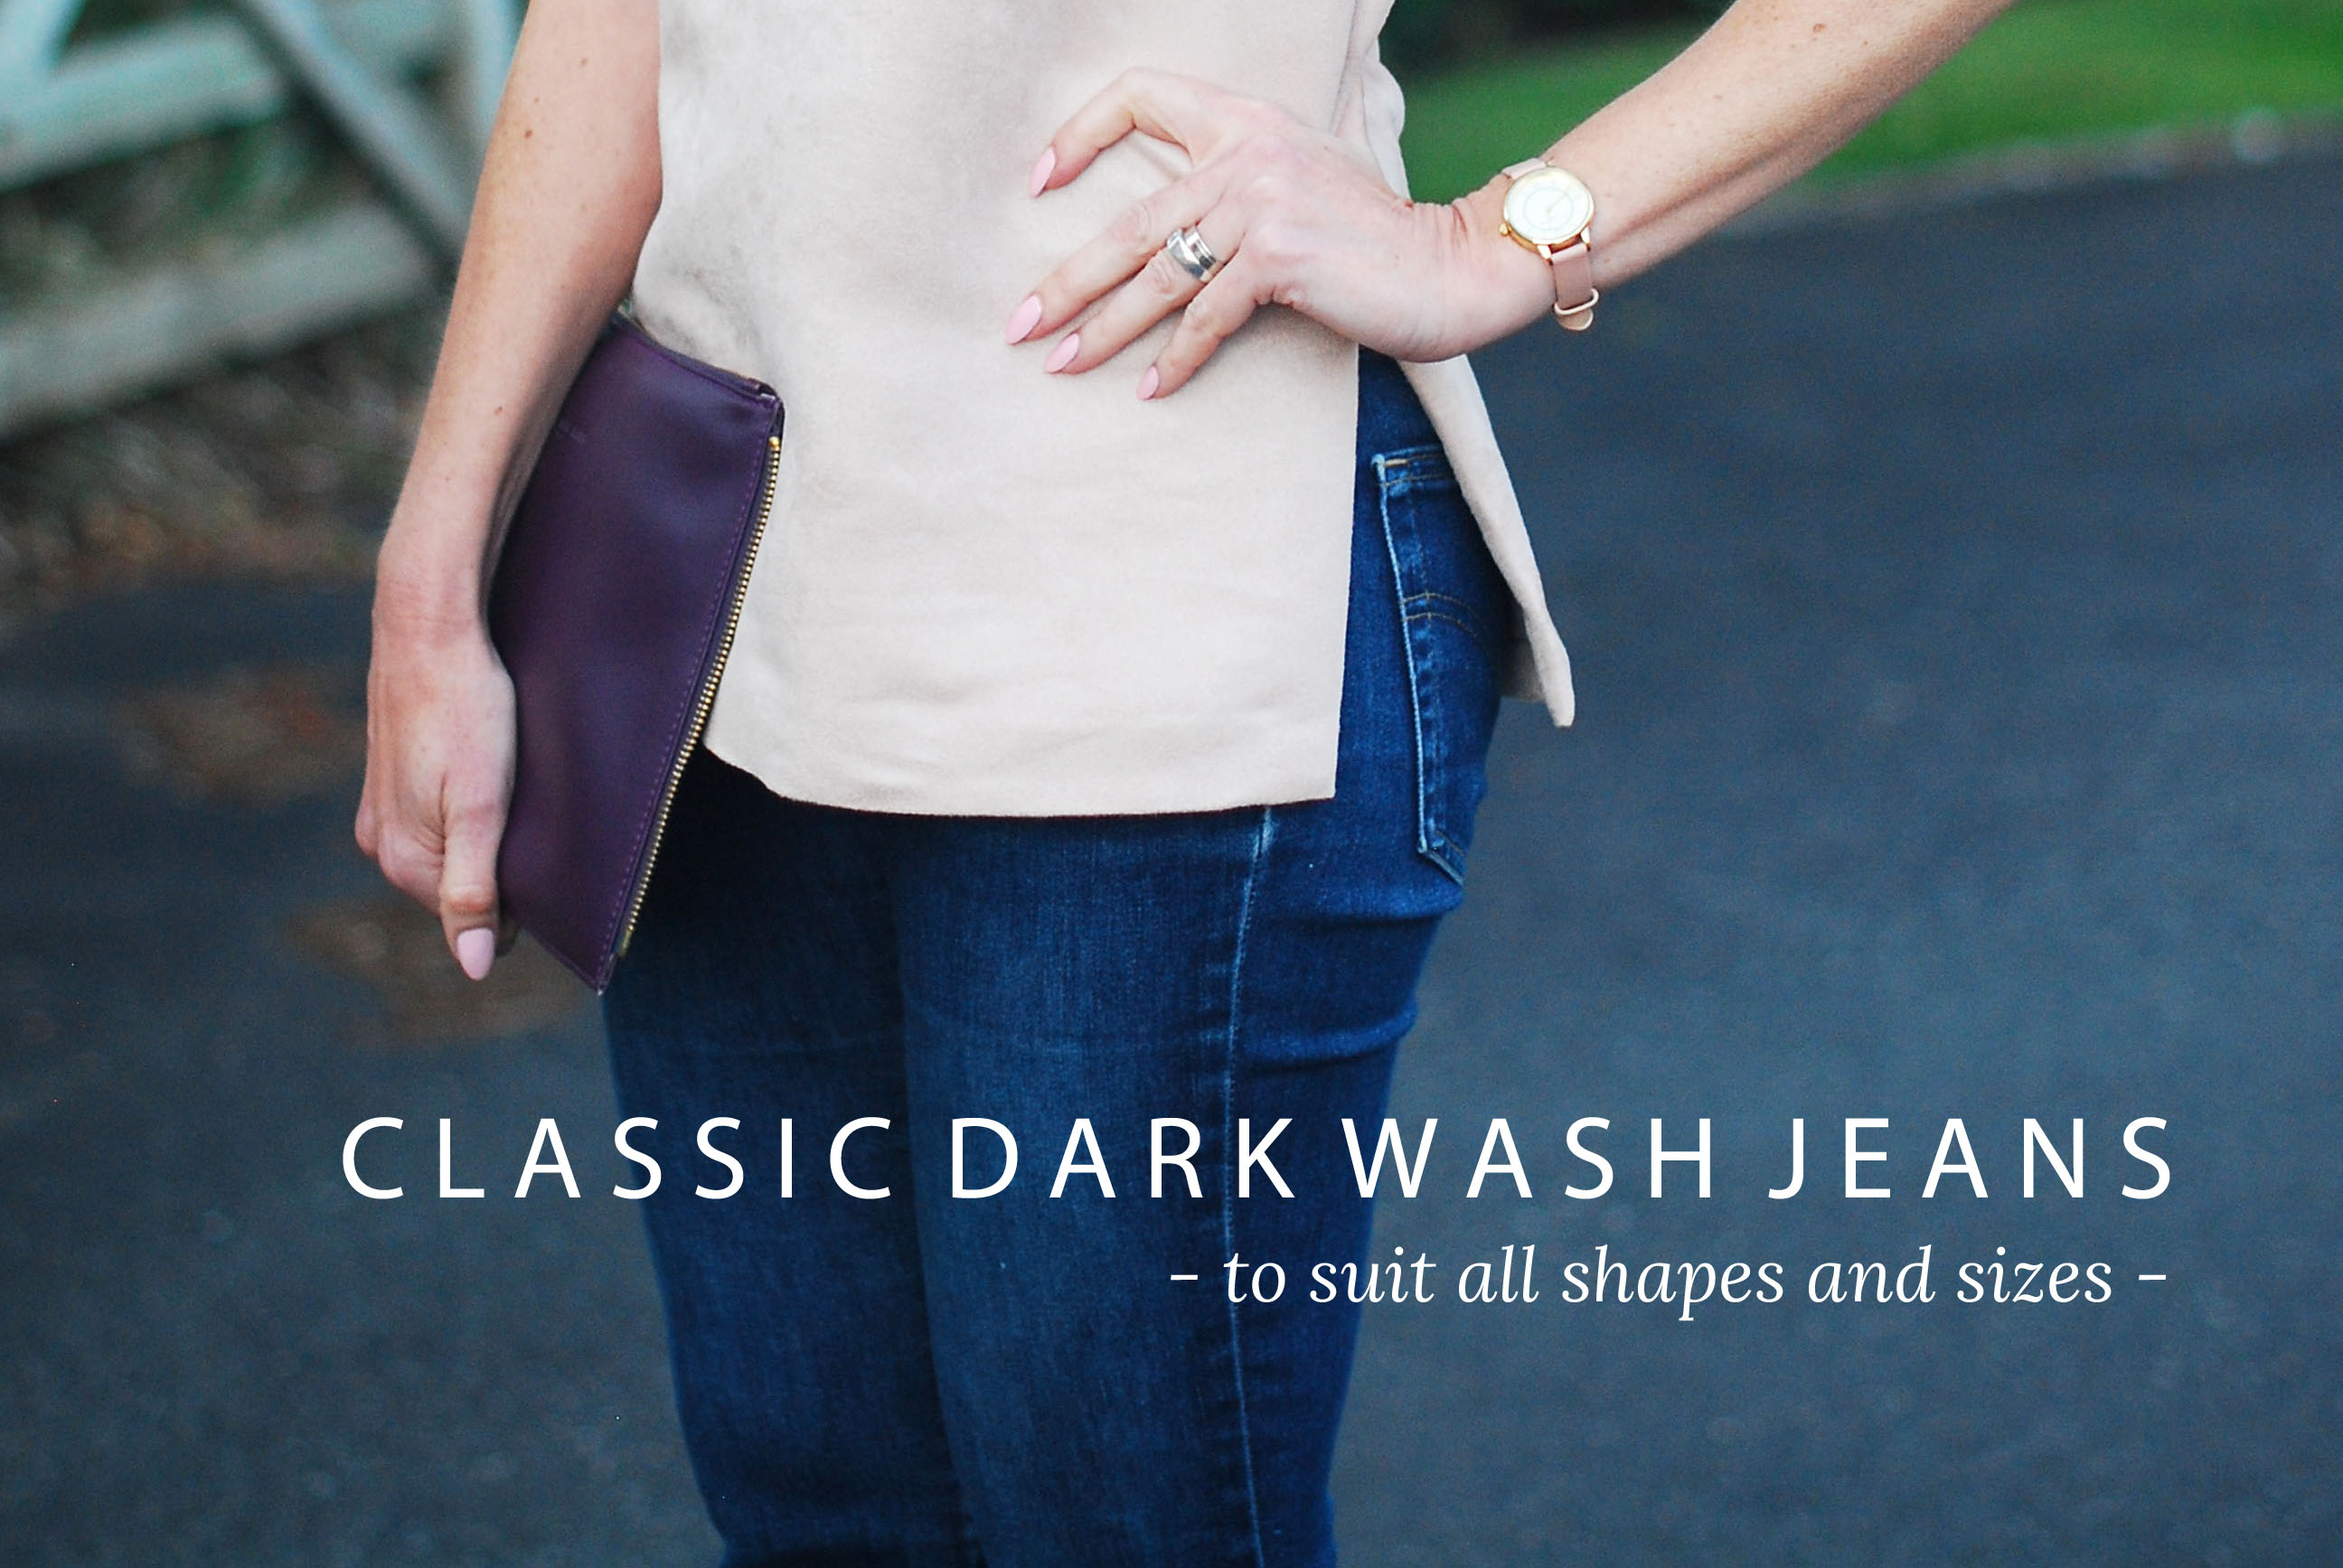 Capsule Wardrobe Pieces That Suit All Body Shapes & Sizes - No.2 Classic Dark Wash Jeans | Not Dressed As Lamb